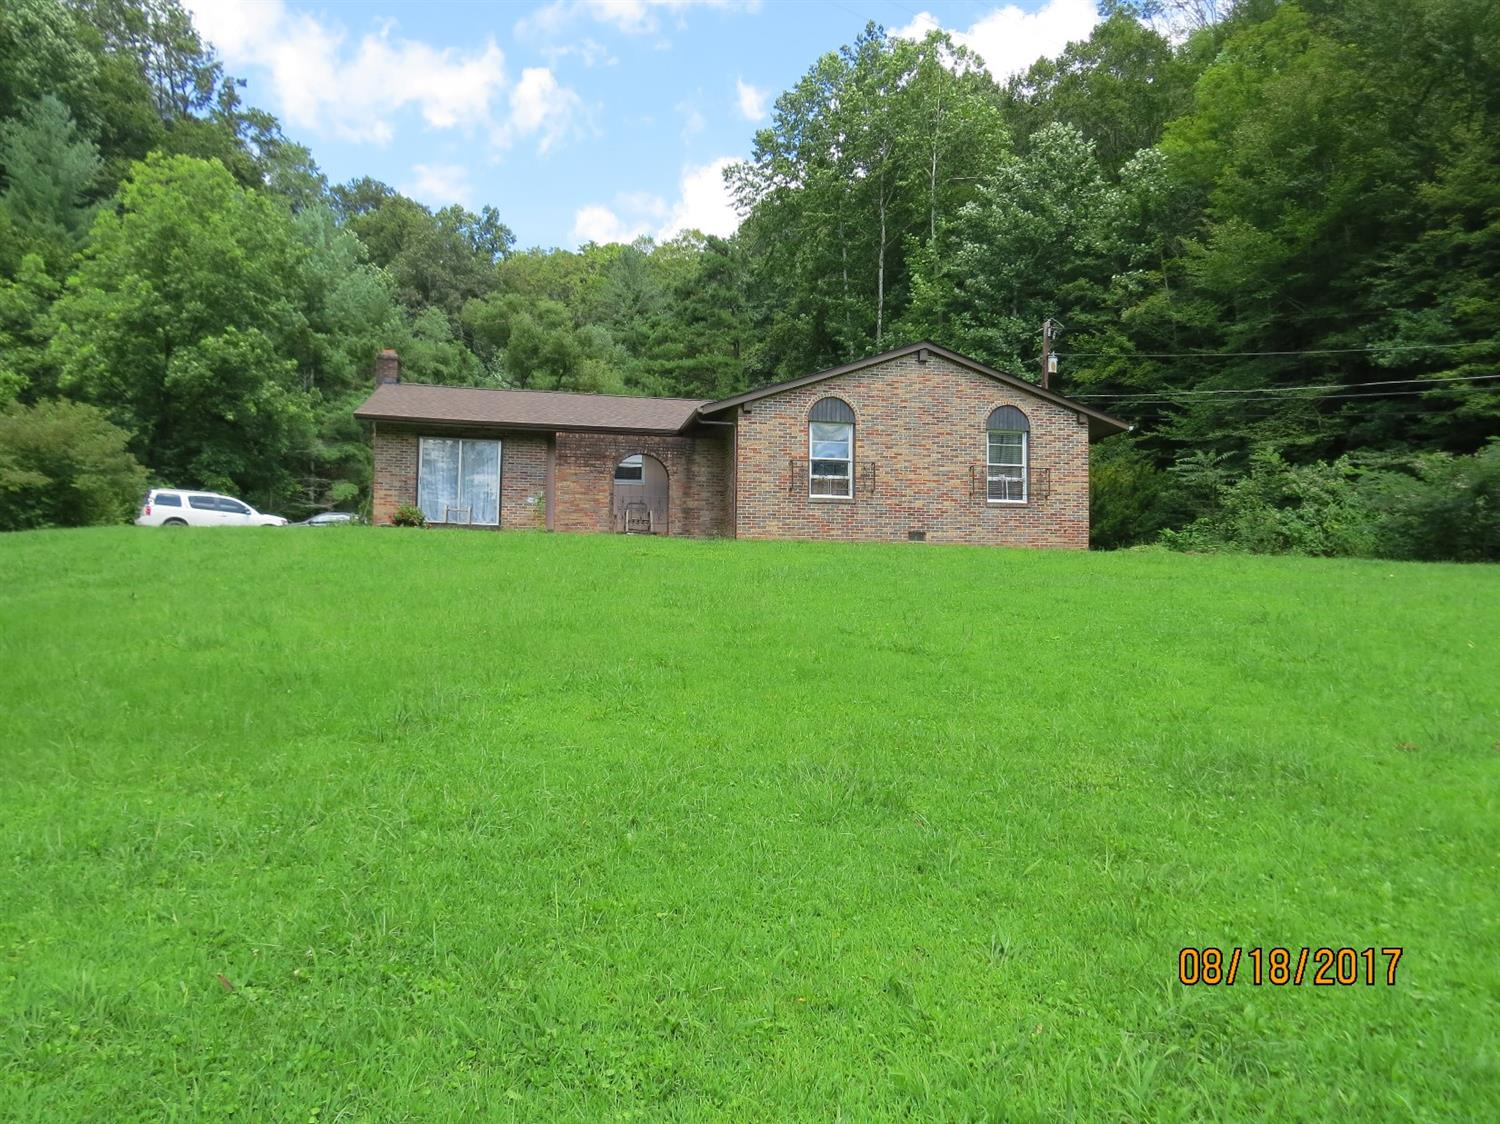 4518 SOUTH US HIGHWAY 119, WALLINS, KY 40873